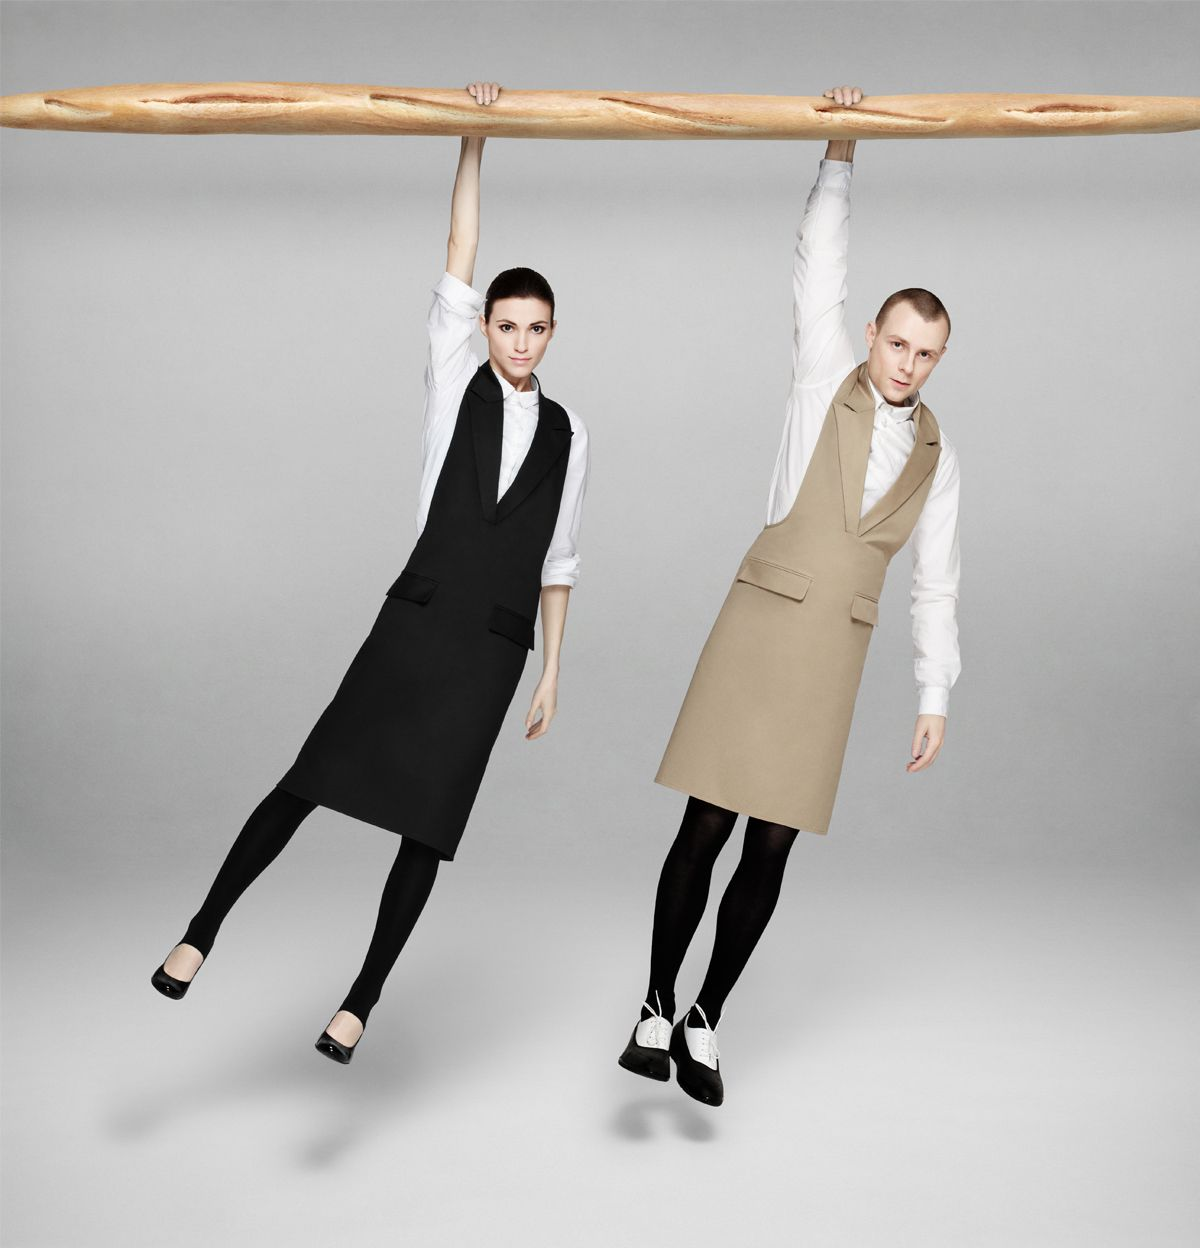 Designer Kitchen Aprons unisex formal collar apronaiste nesterovaite. | just a bit of